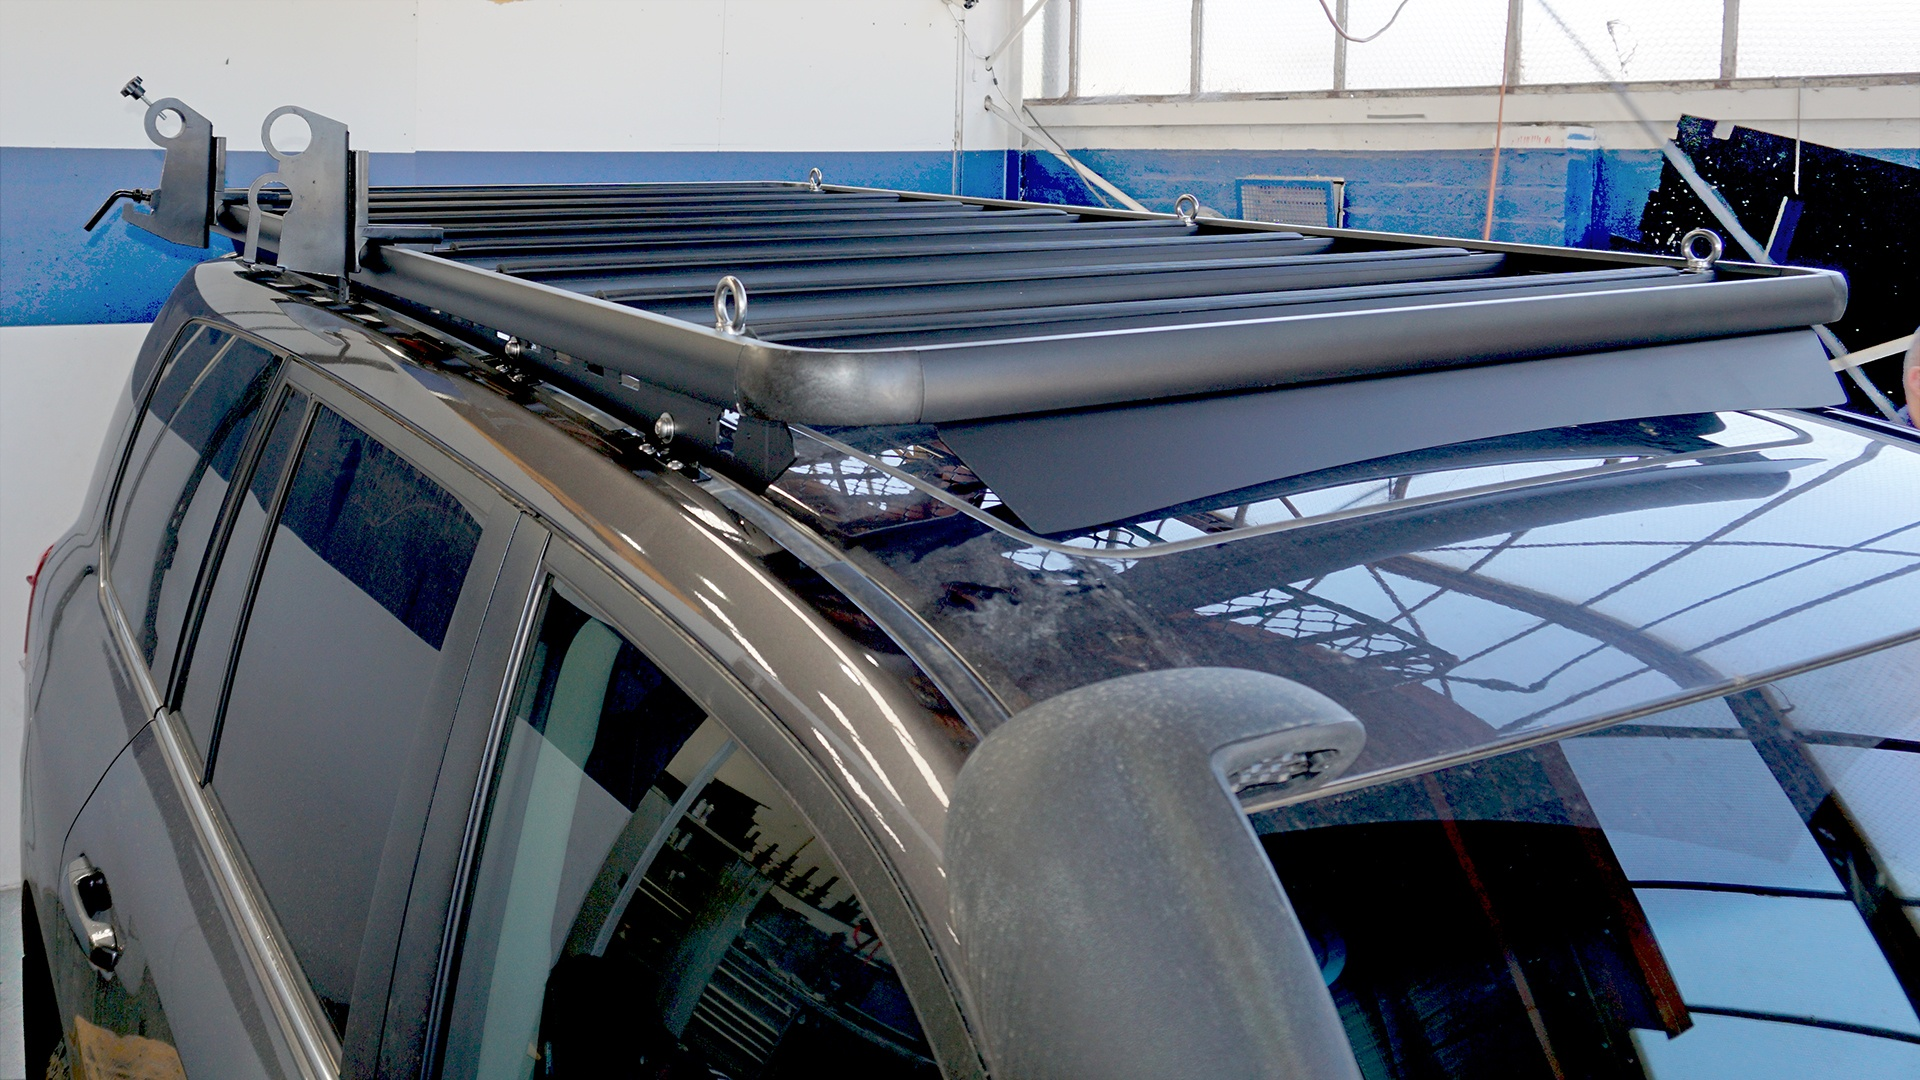 Front view of a Toyota LandCruiser 200 Series with a Wedgetail roof rack installed and a hi-lift jack and shovel holder installed as well as five tie-down eyelets.